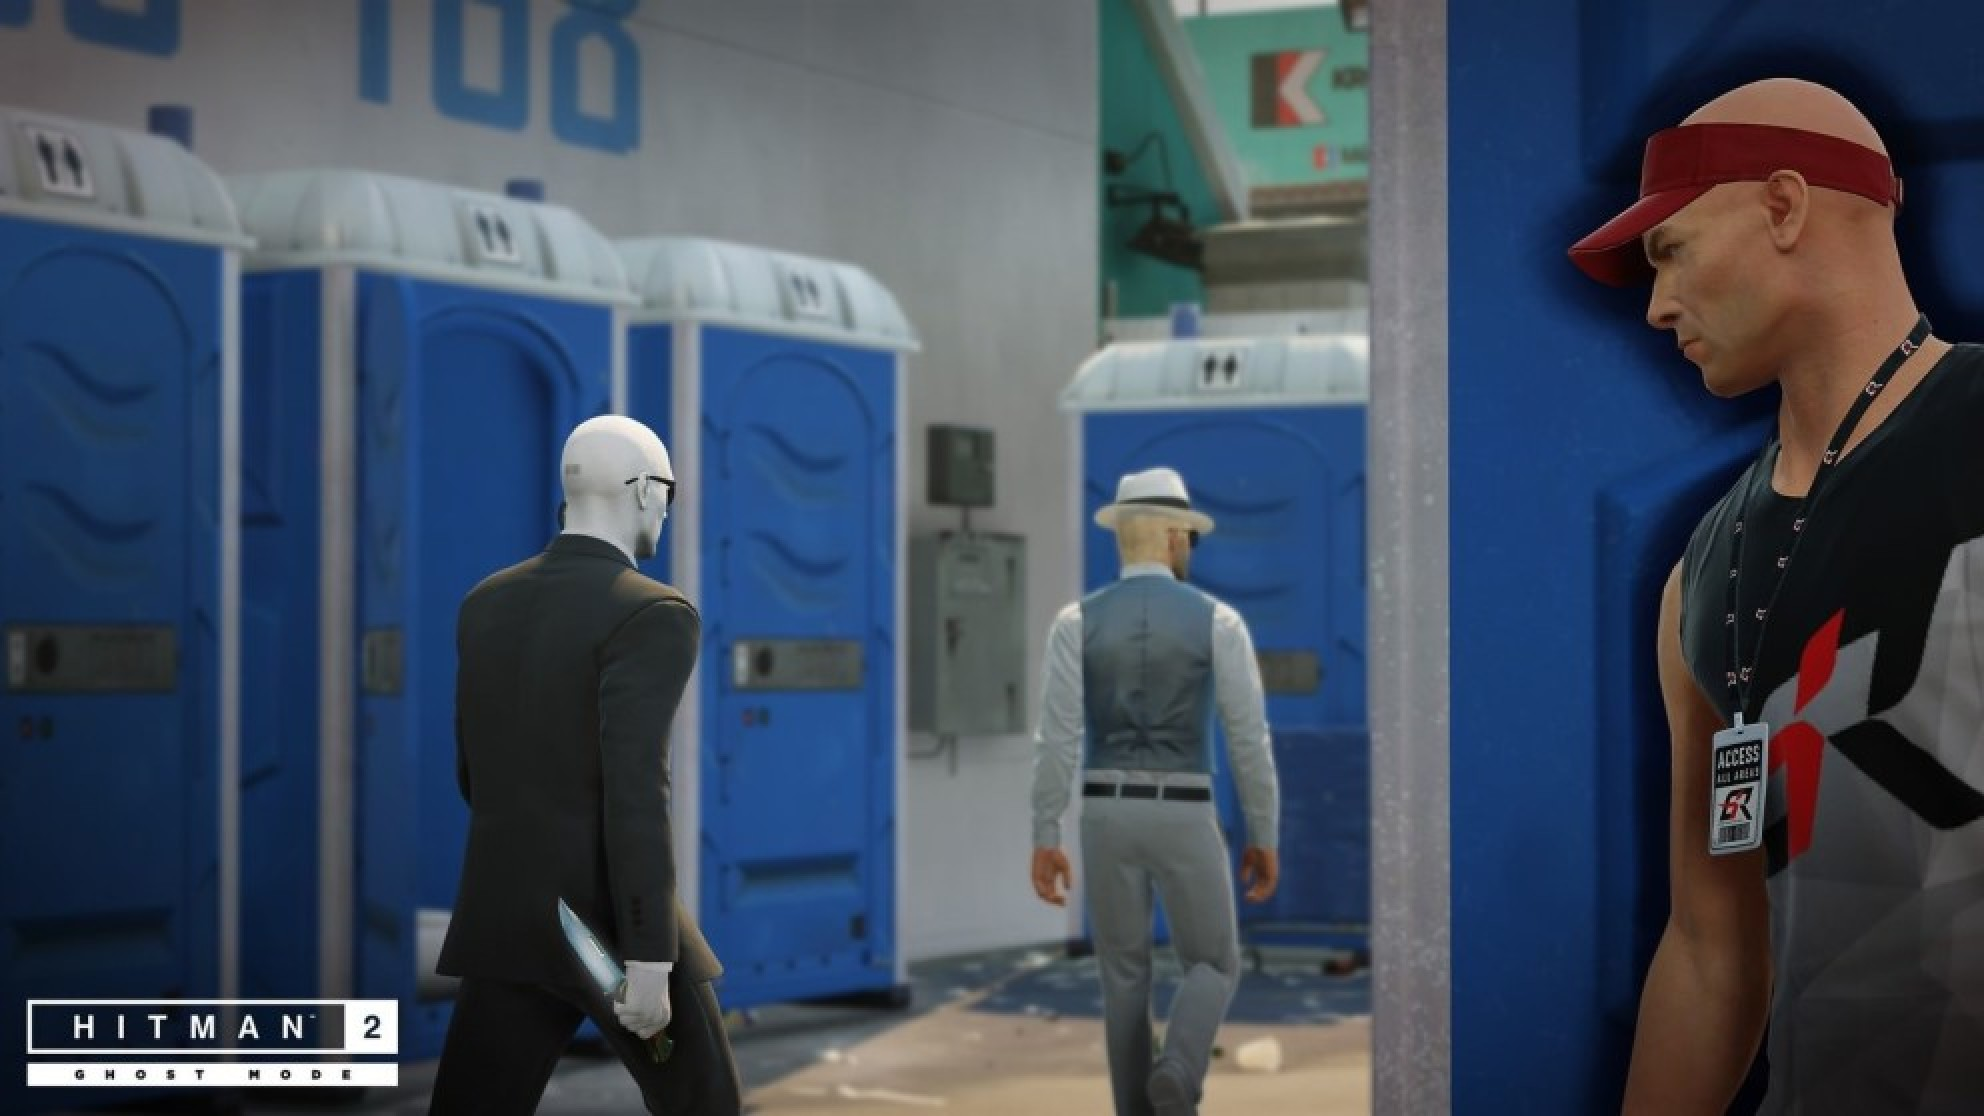 Hitman 2 Competitive mode announced